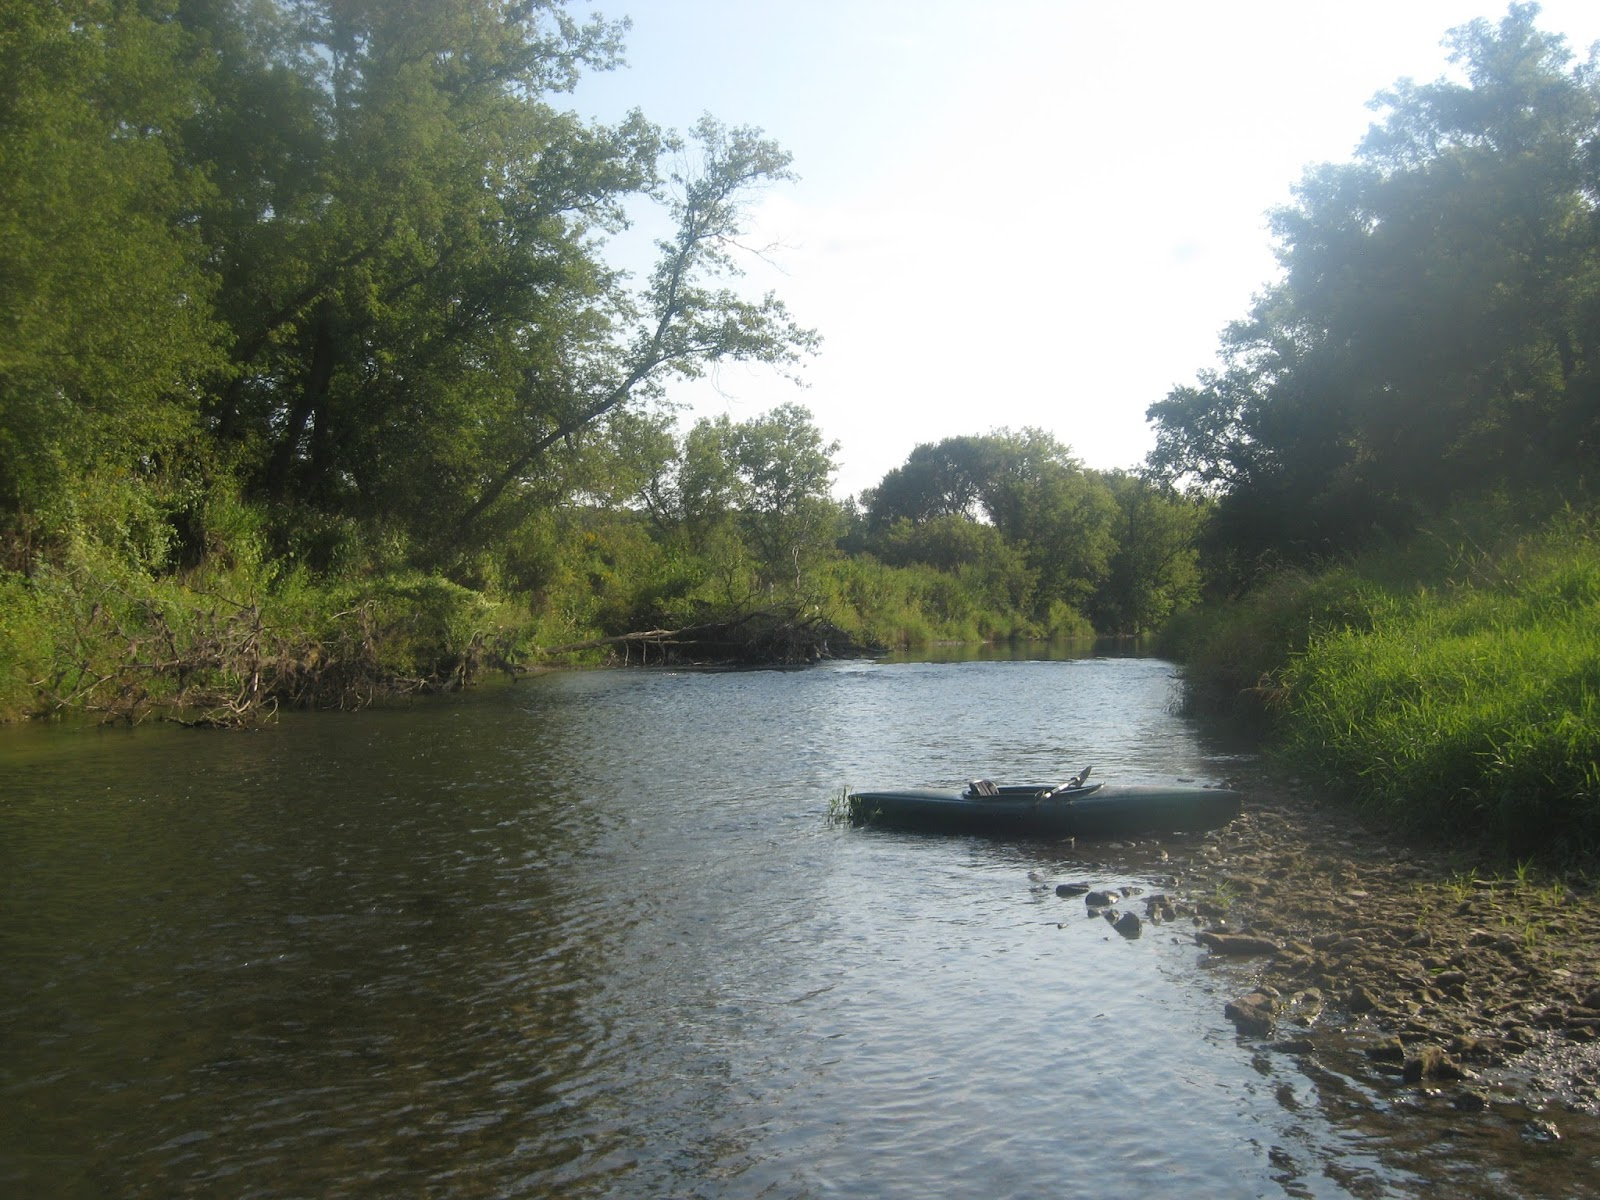 Minnesota driftless fly fishing trip report yakin 39 the root for Driftless fly fishing